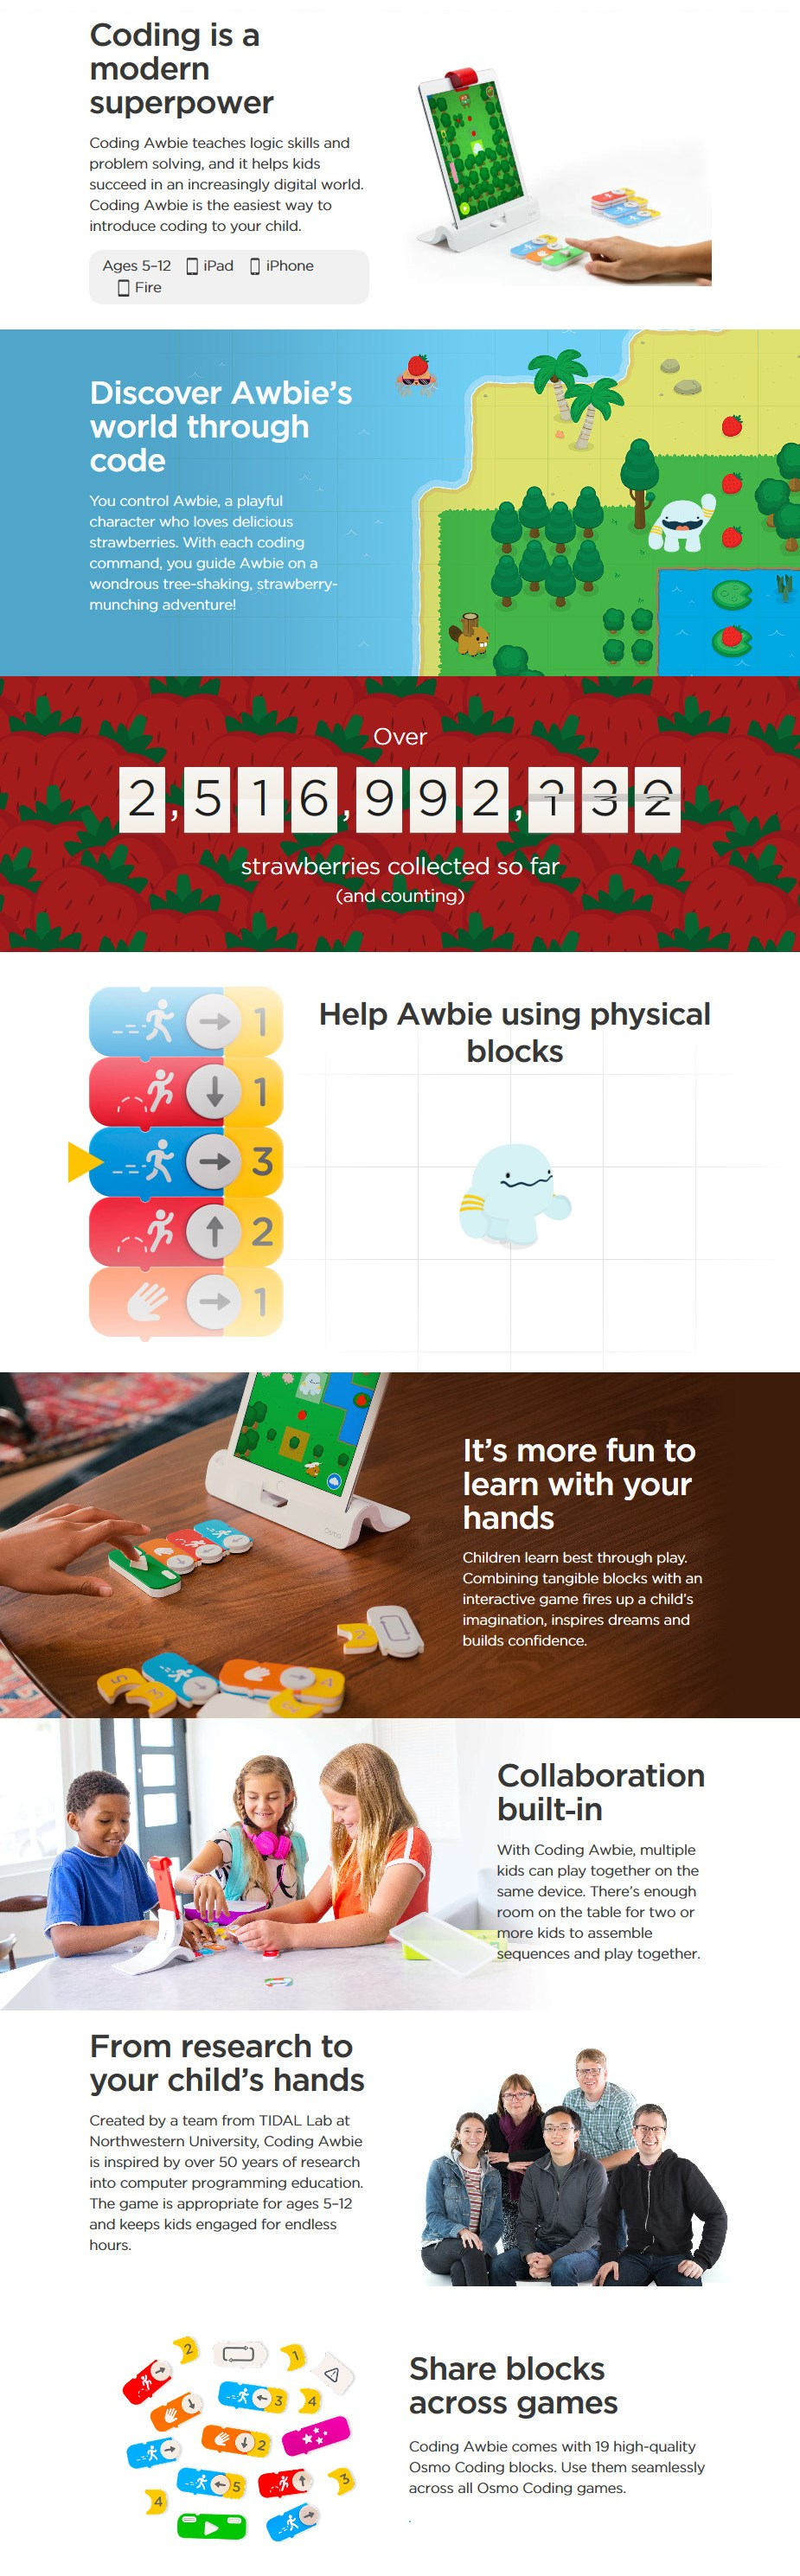 Osmo Coding Awbie Game for iPhone & iPad - Desktop Overview 1